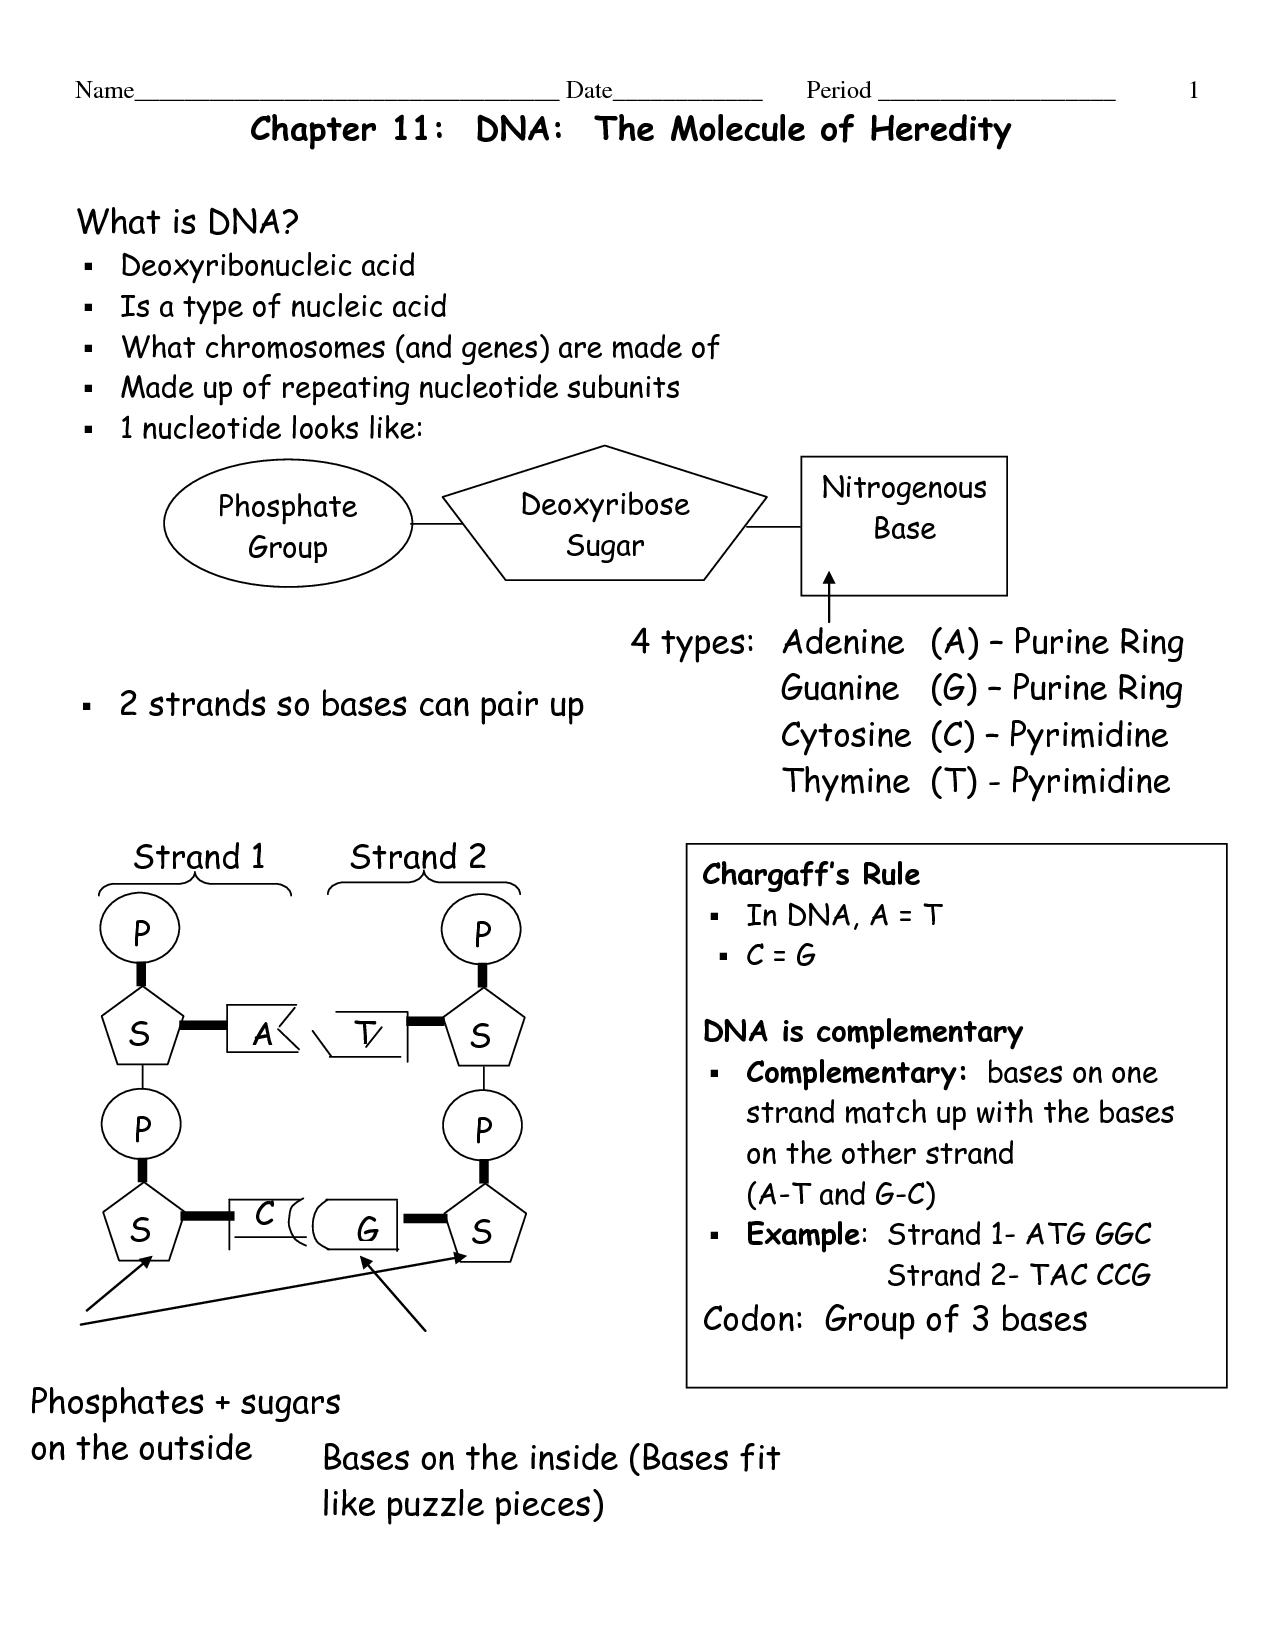 15 Best Images of DNA Model Building Worksheet  DNA Paper Model Activity, DNA Structure